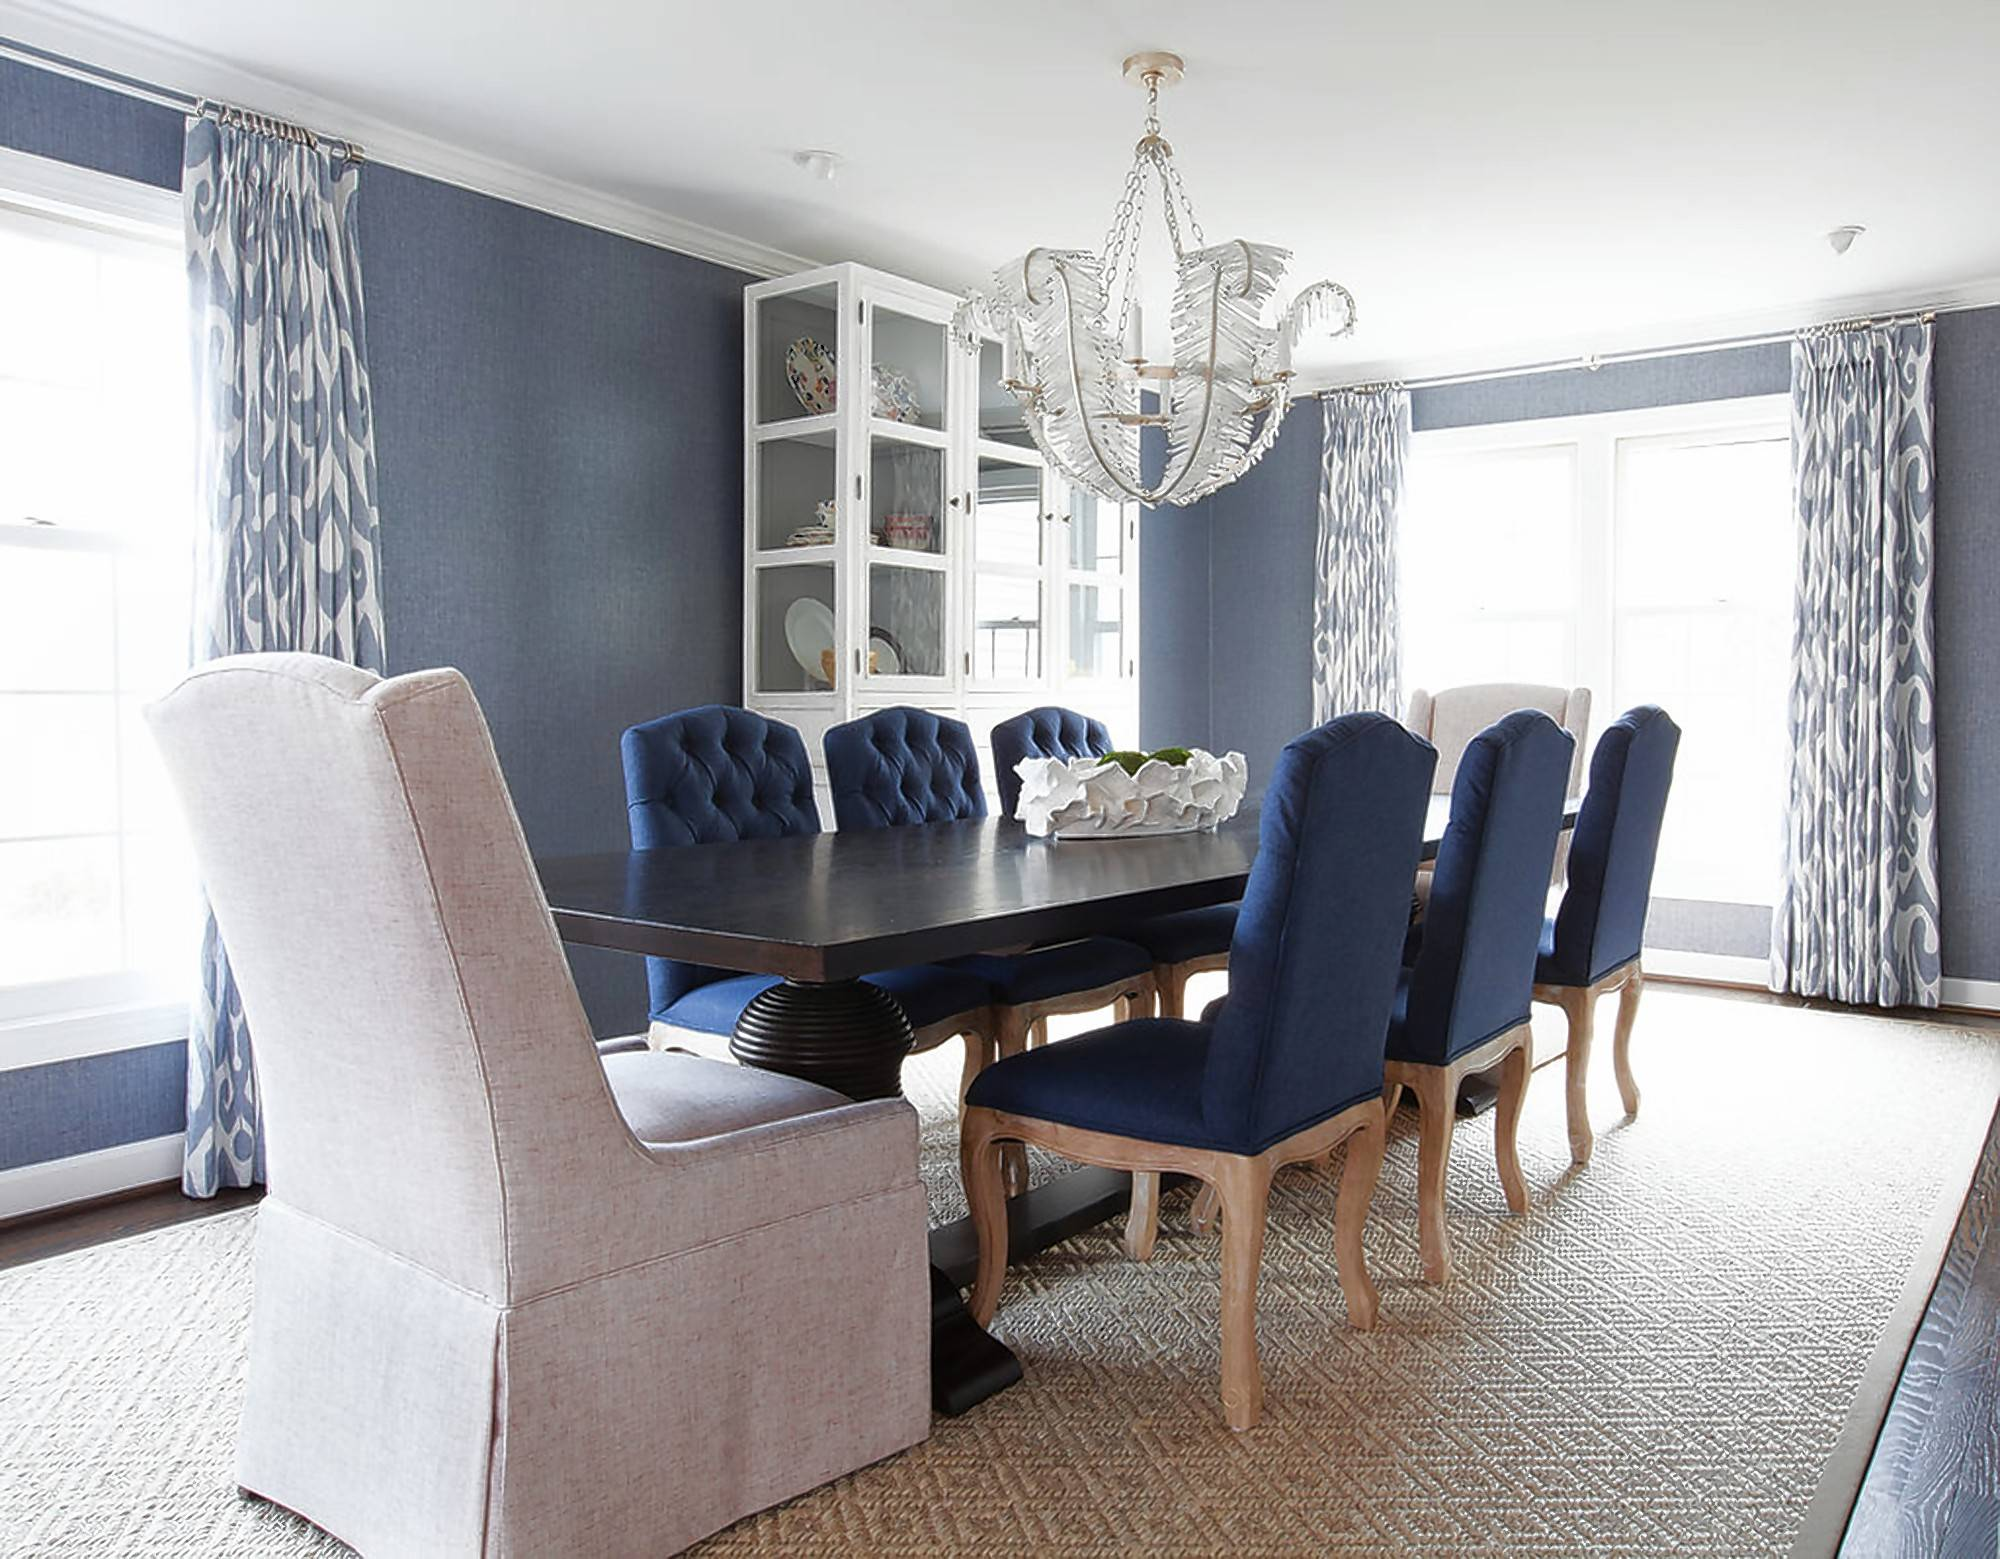 A dining room in Bethesda, Maryland, designed by Erica Burns uses contrasting host chairs at the ends of the table to avoid a matchy-matchy look.